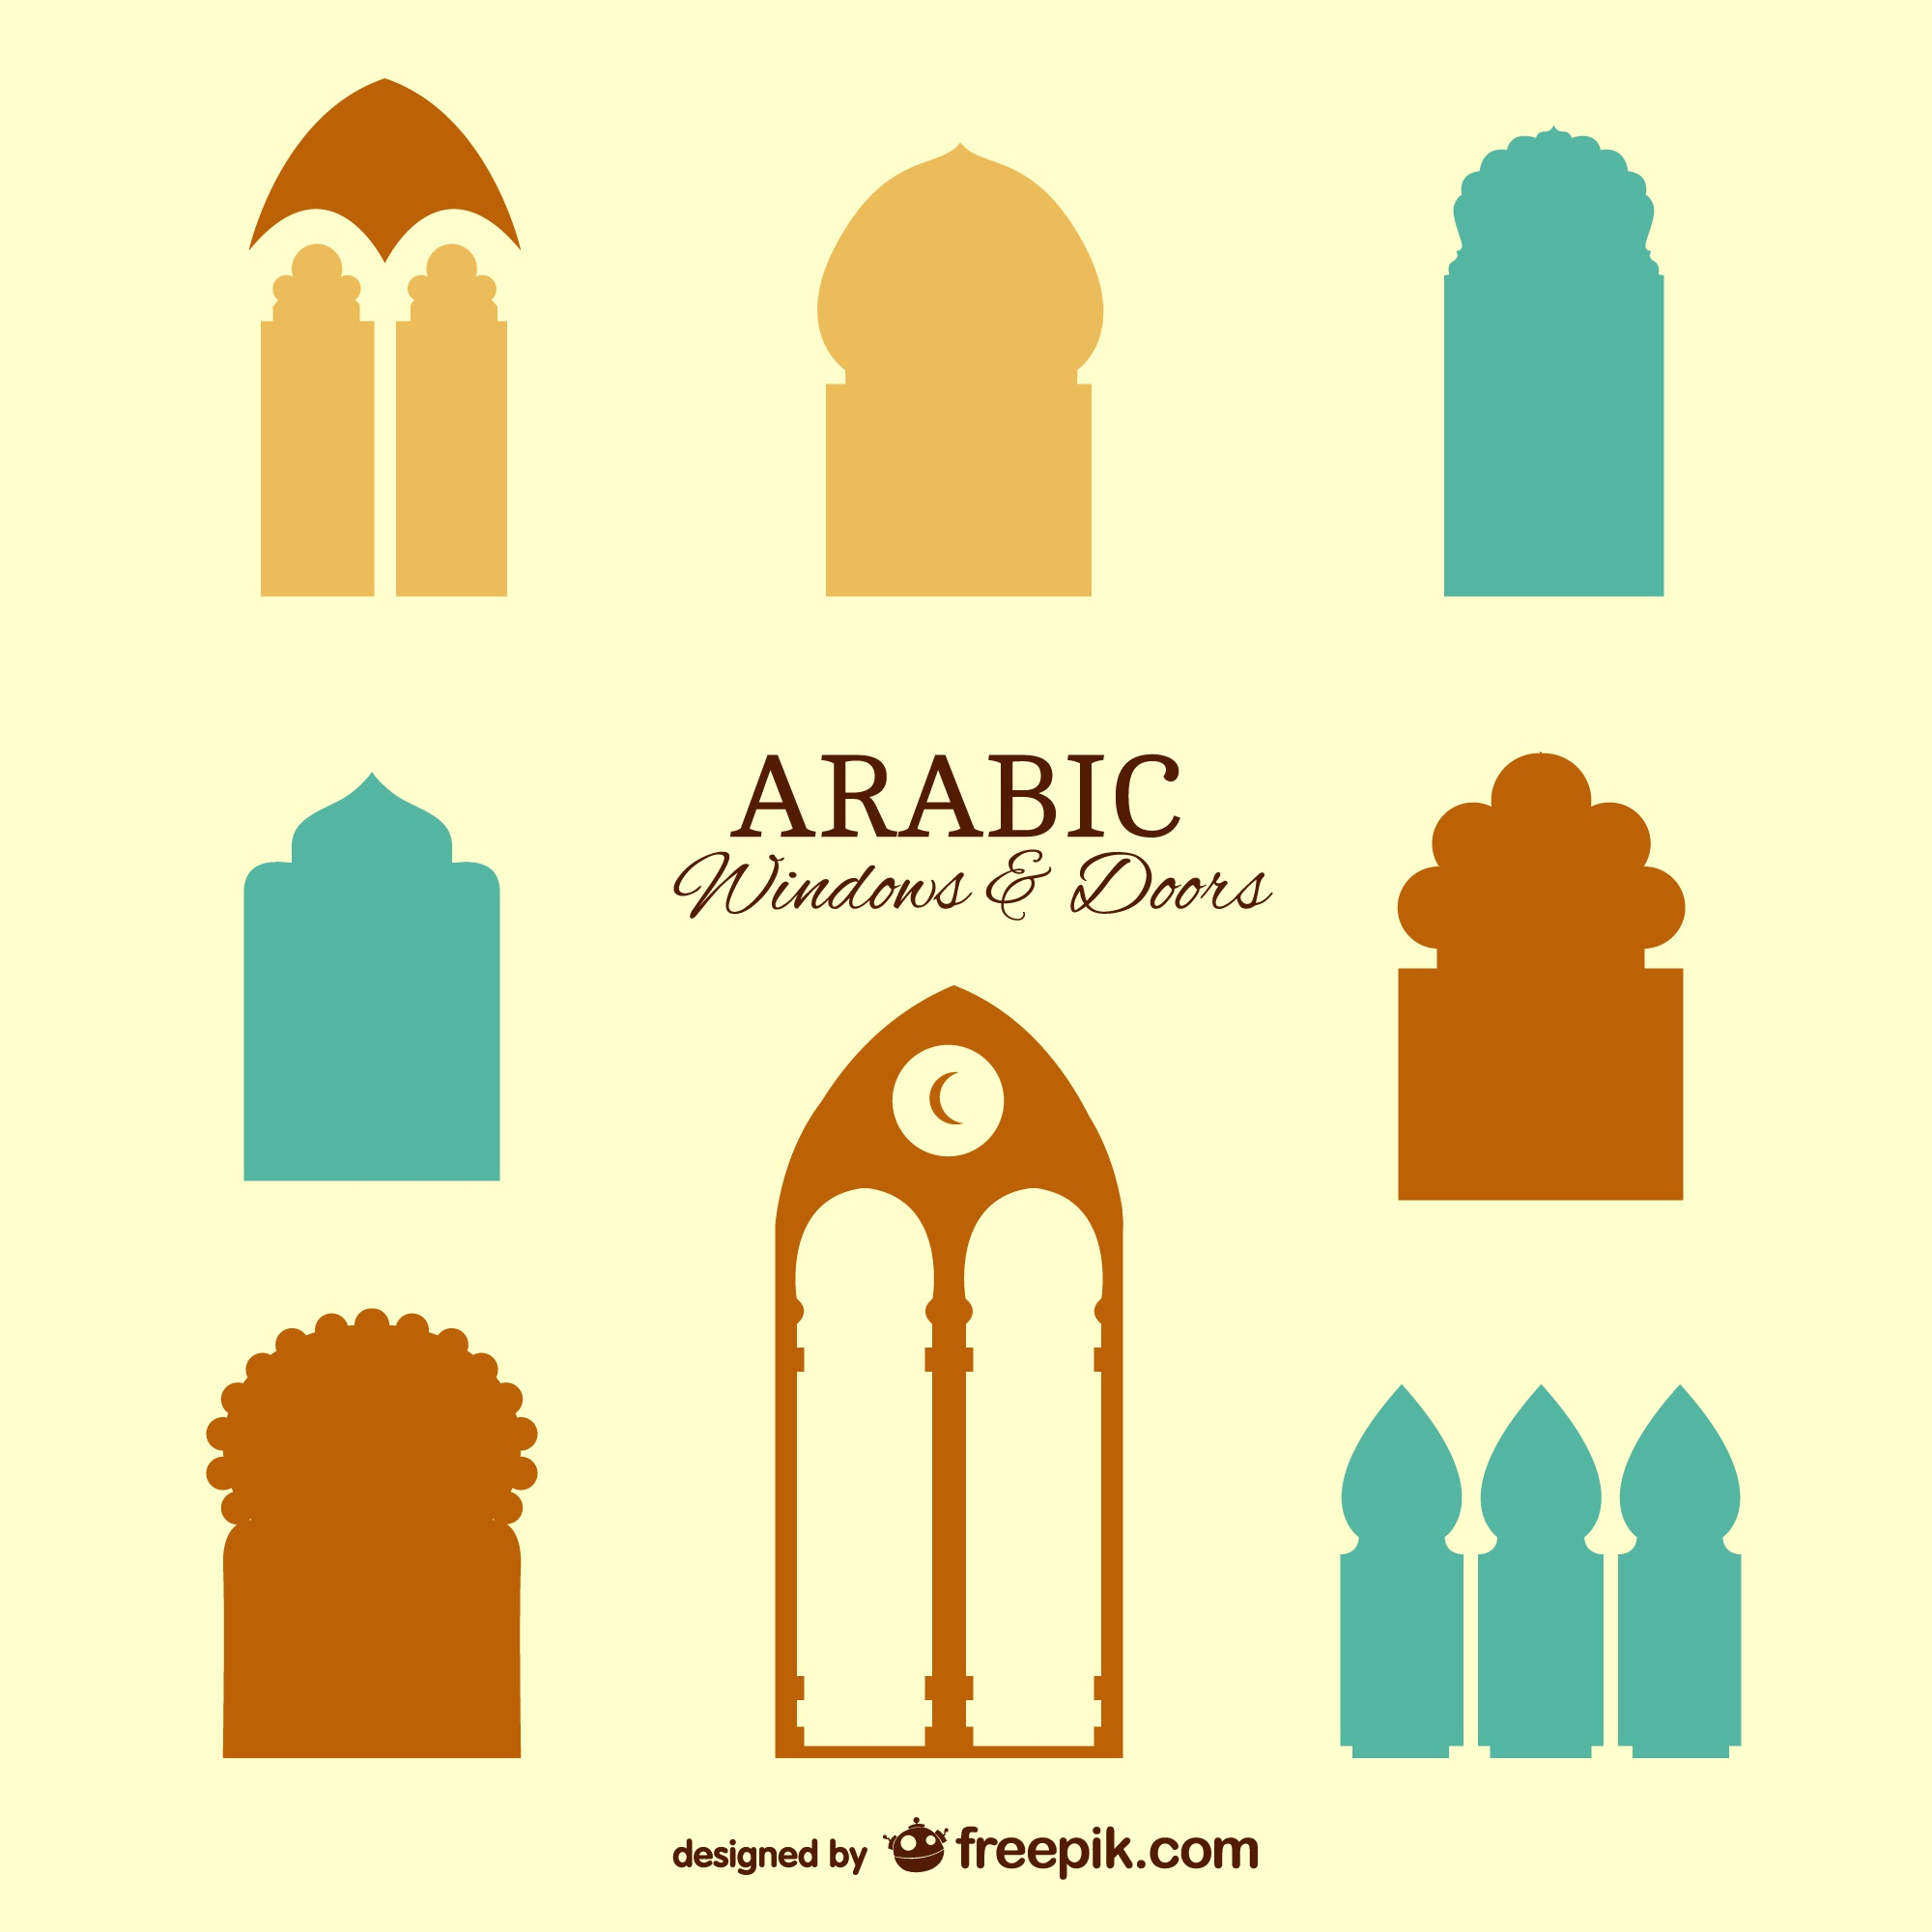 Arabic windows and doors